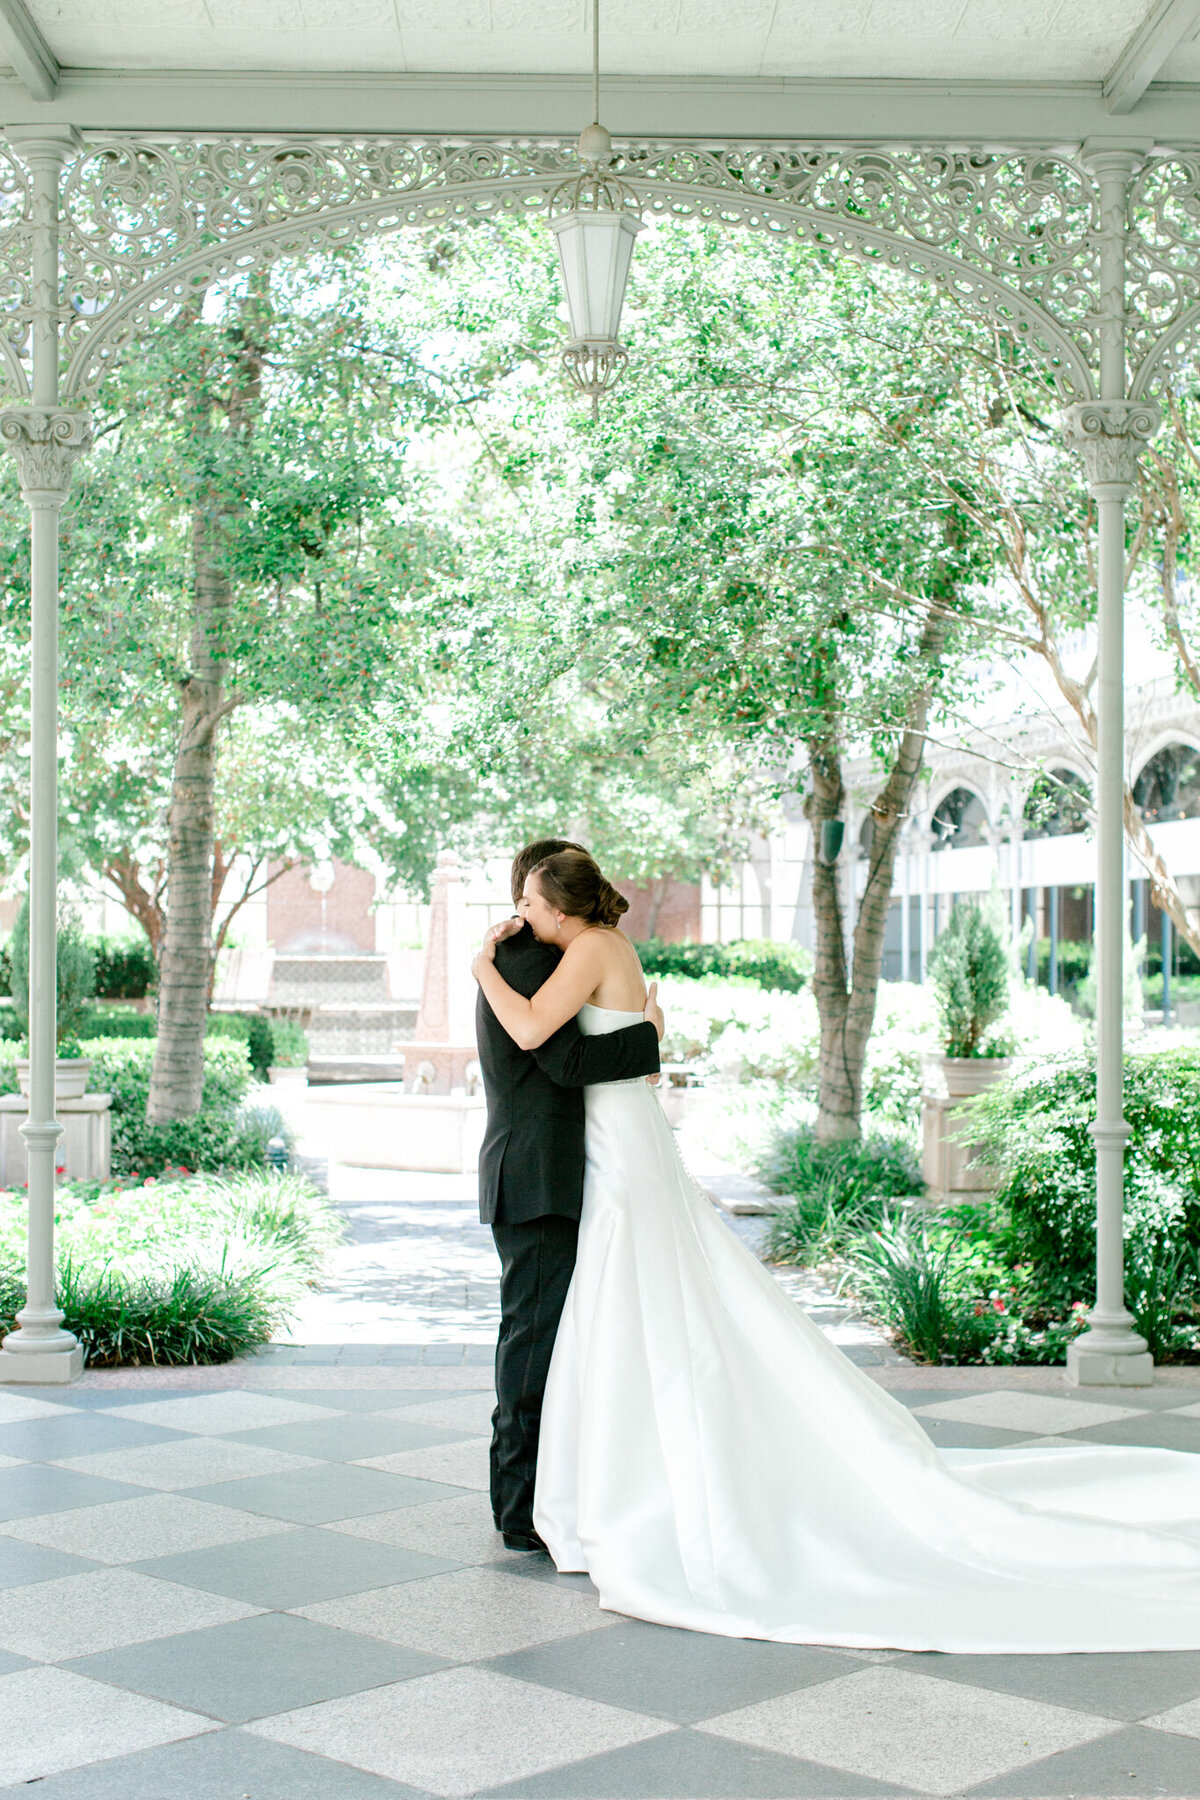 Wedding at the Crescent Court Hotel and Highland Park United Methodist Church in Dallas | Sami Kathryn Photography | DFW Wedding Photographer-53